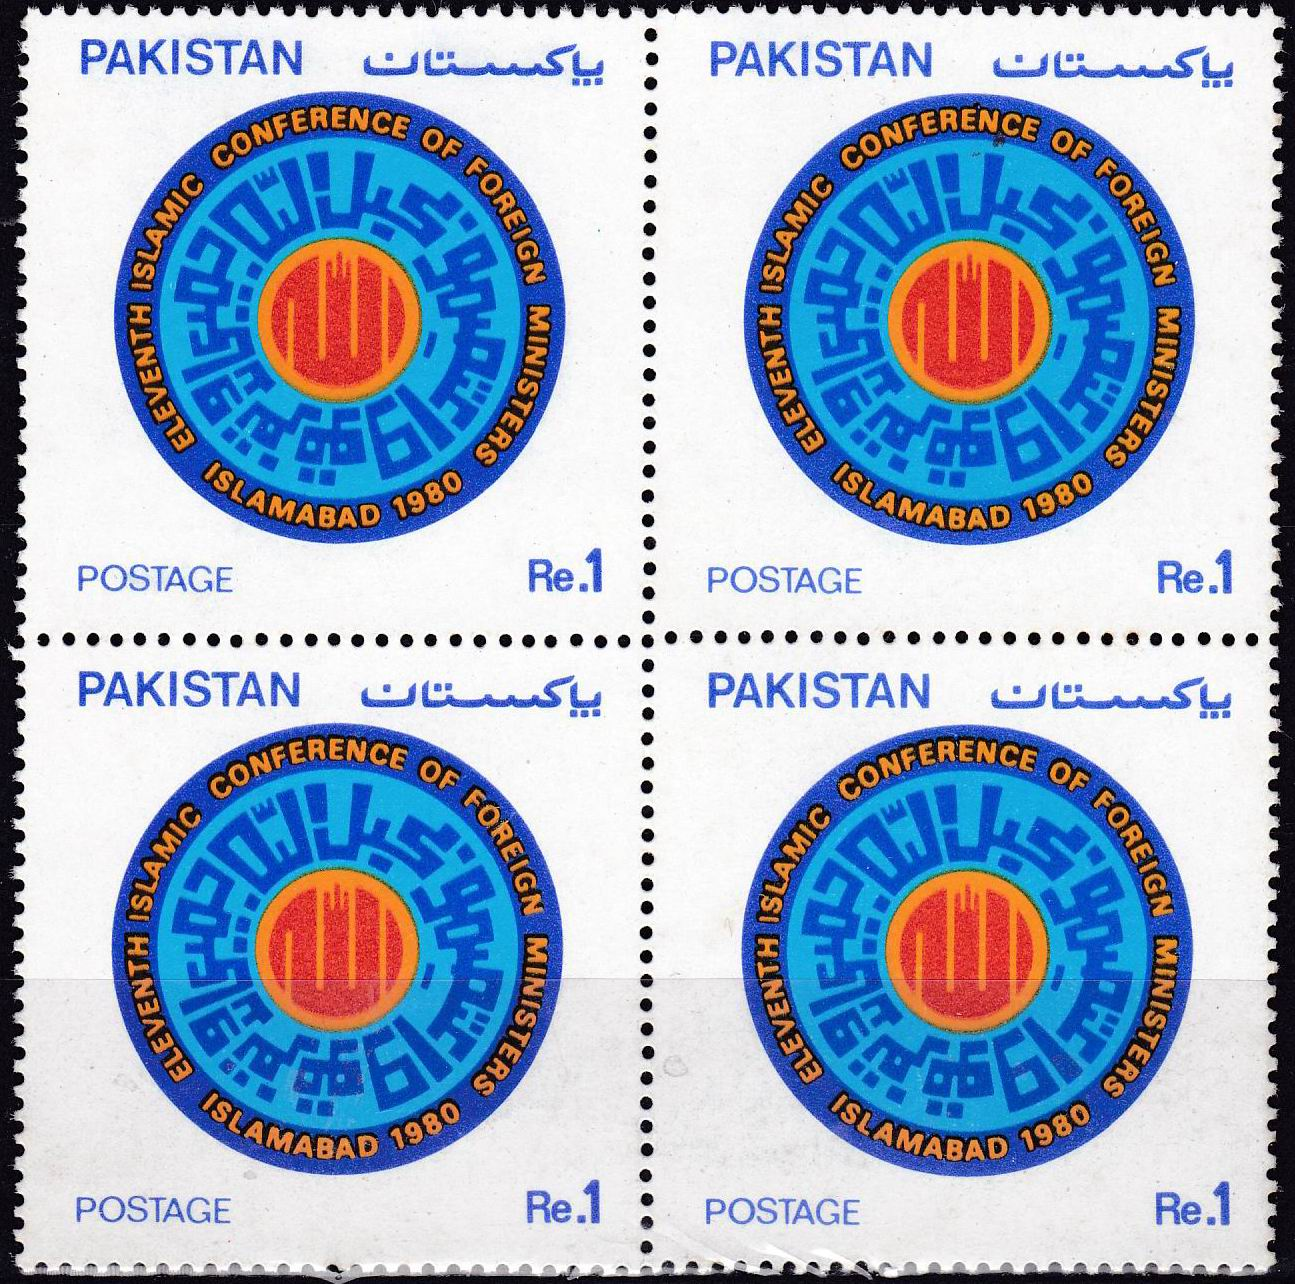 Pakistan Stamps 1980 Islamic Conference of Foreign Ministers